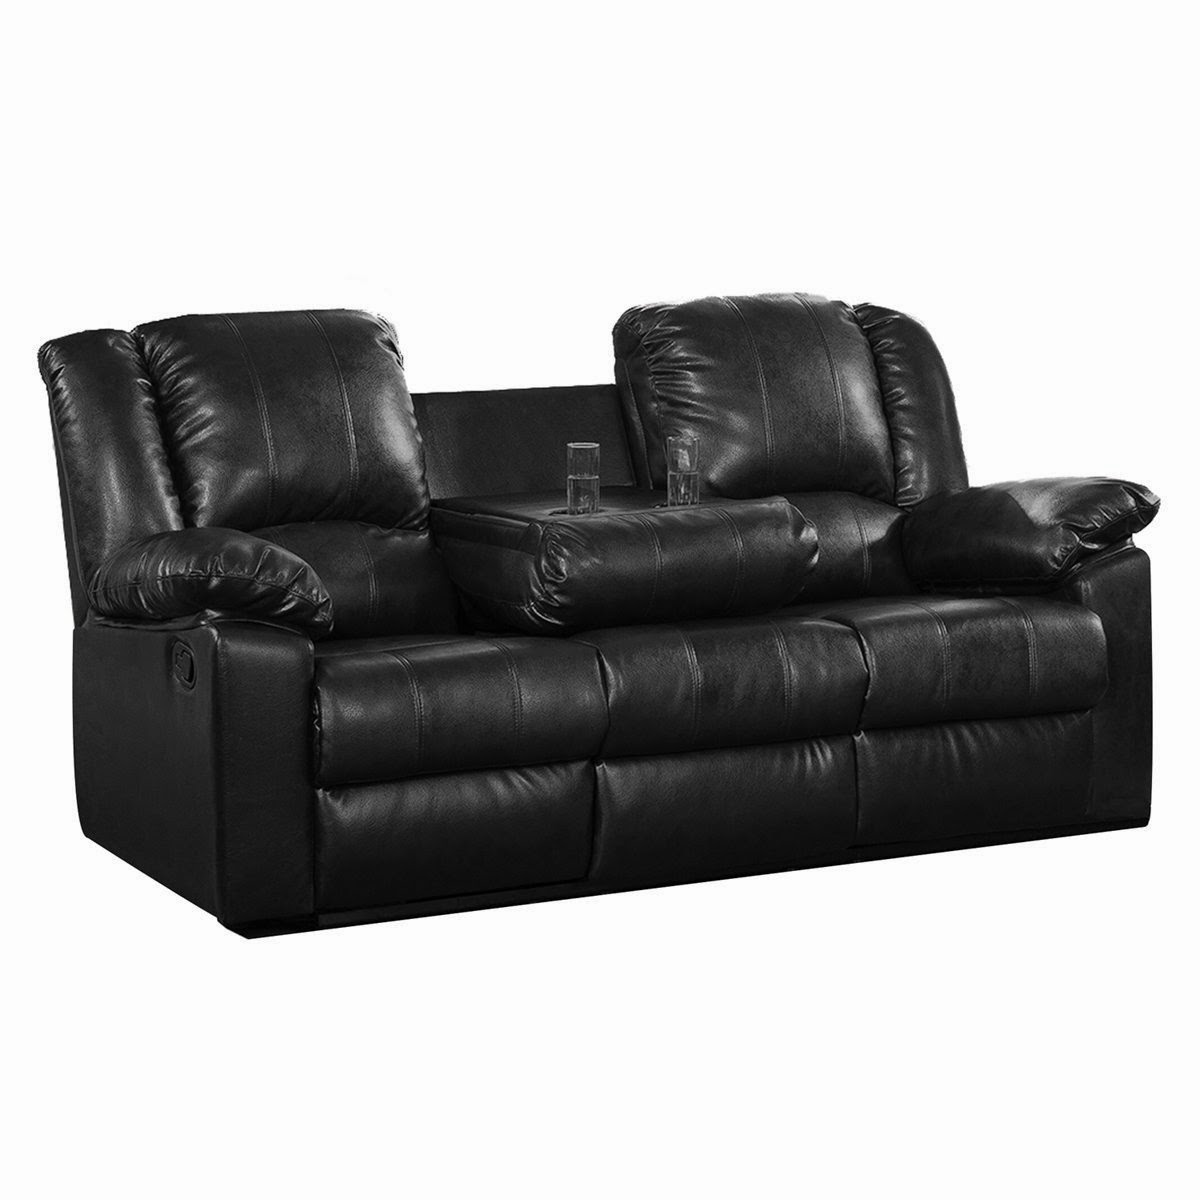 Double Reclining Sofa With Fold Down Table Man Cave Furniture The Best Leather Reviews